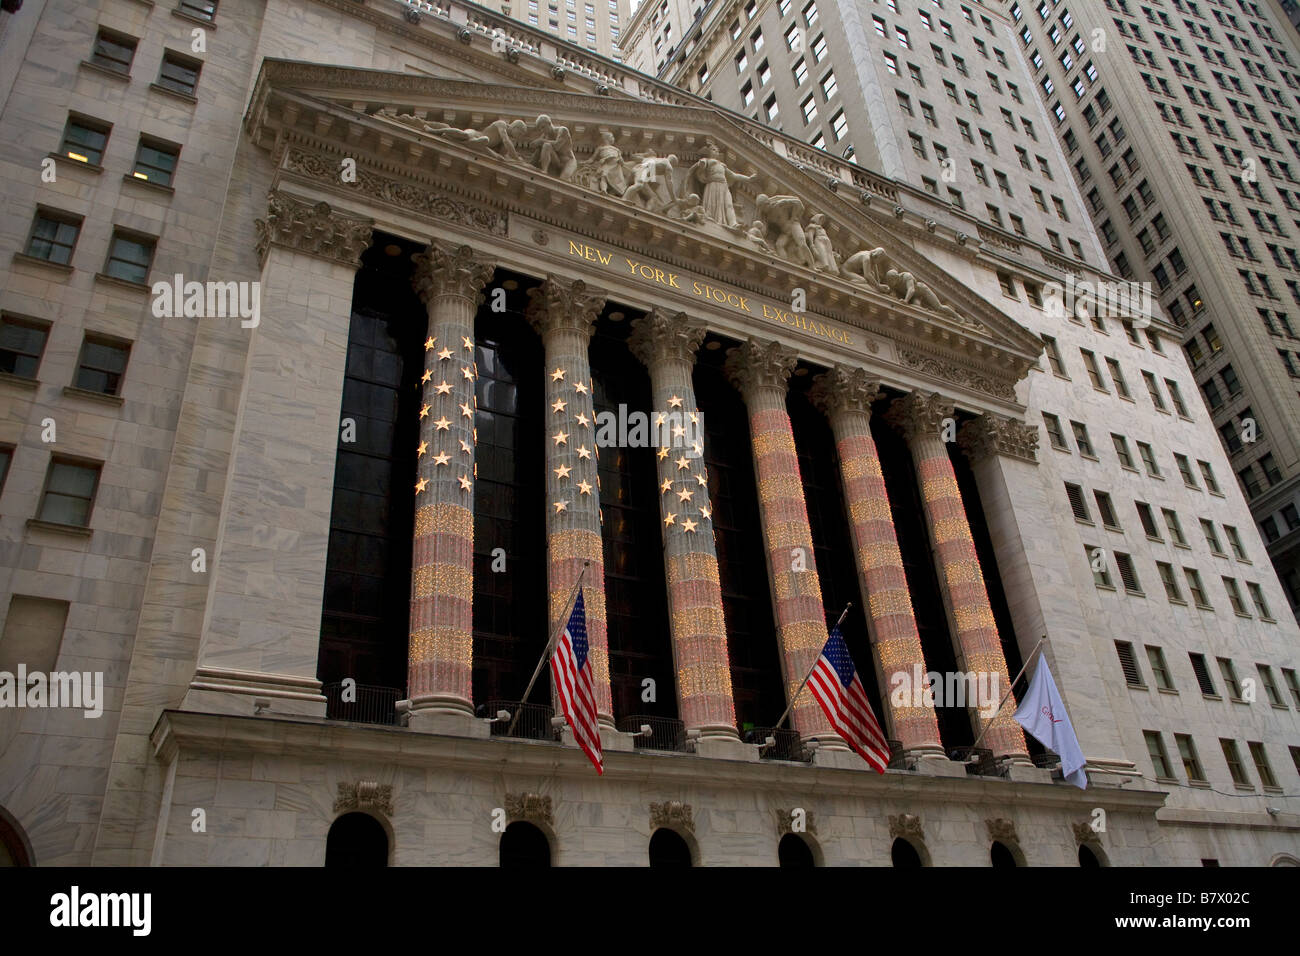 New York Stock Exchange strung with red white and blue lights creating an American Flag - Stock Image